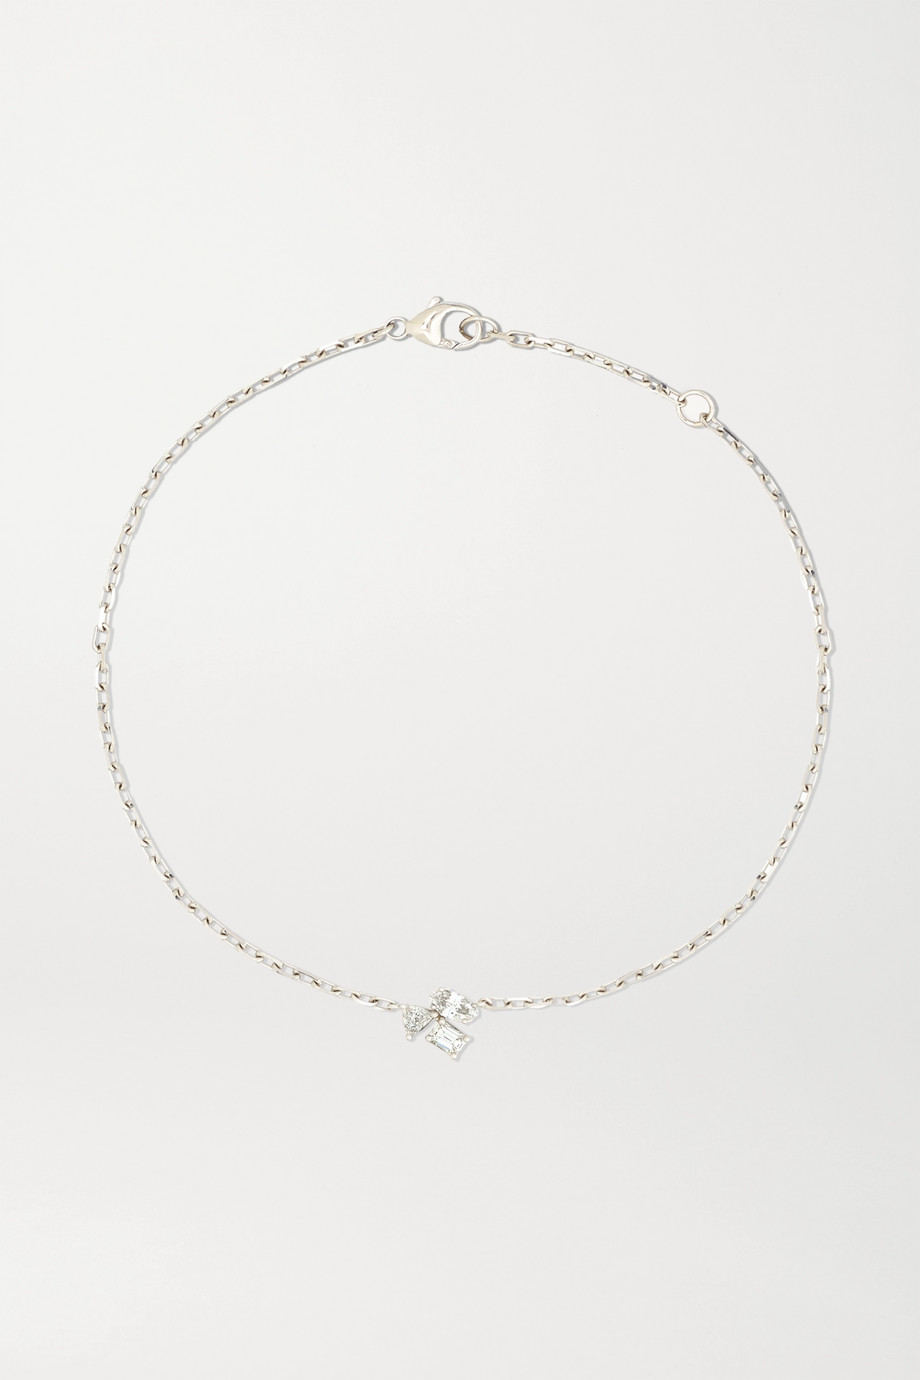 Kimberly McDonald 18-karat white gold diamond anklet